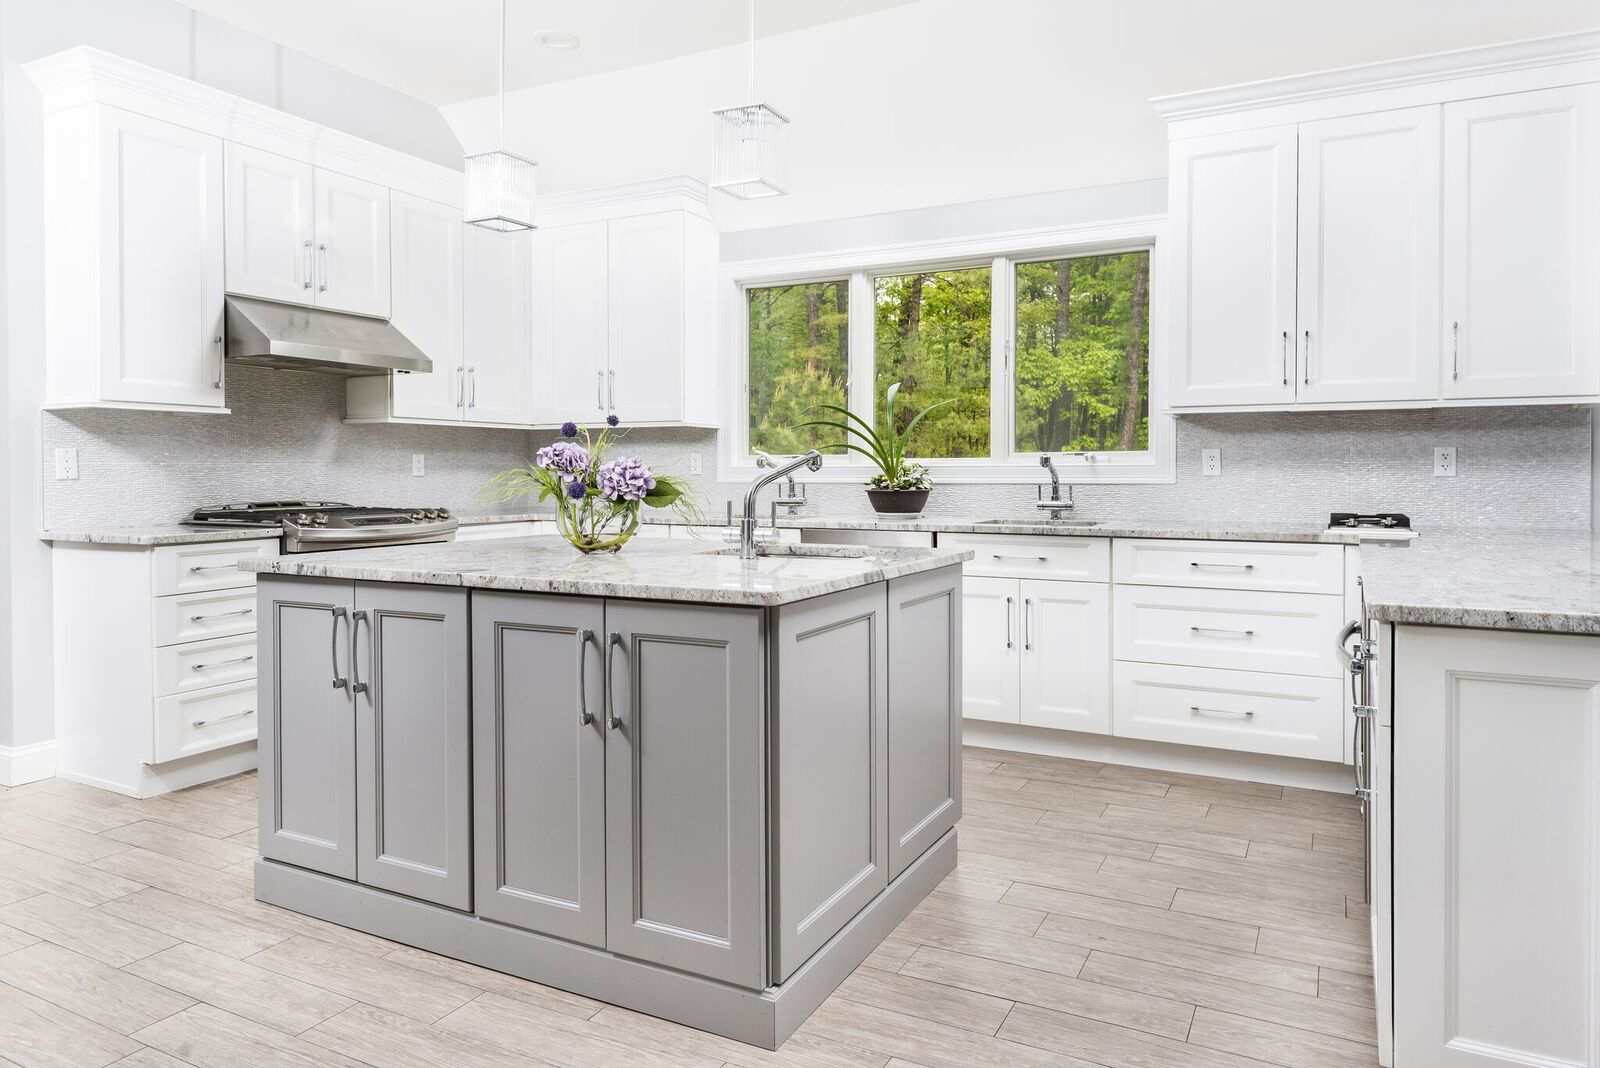 Kitchen Cabinets Painted Grey The Power Of Grey Kitchens Cabinets